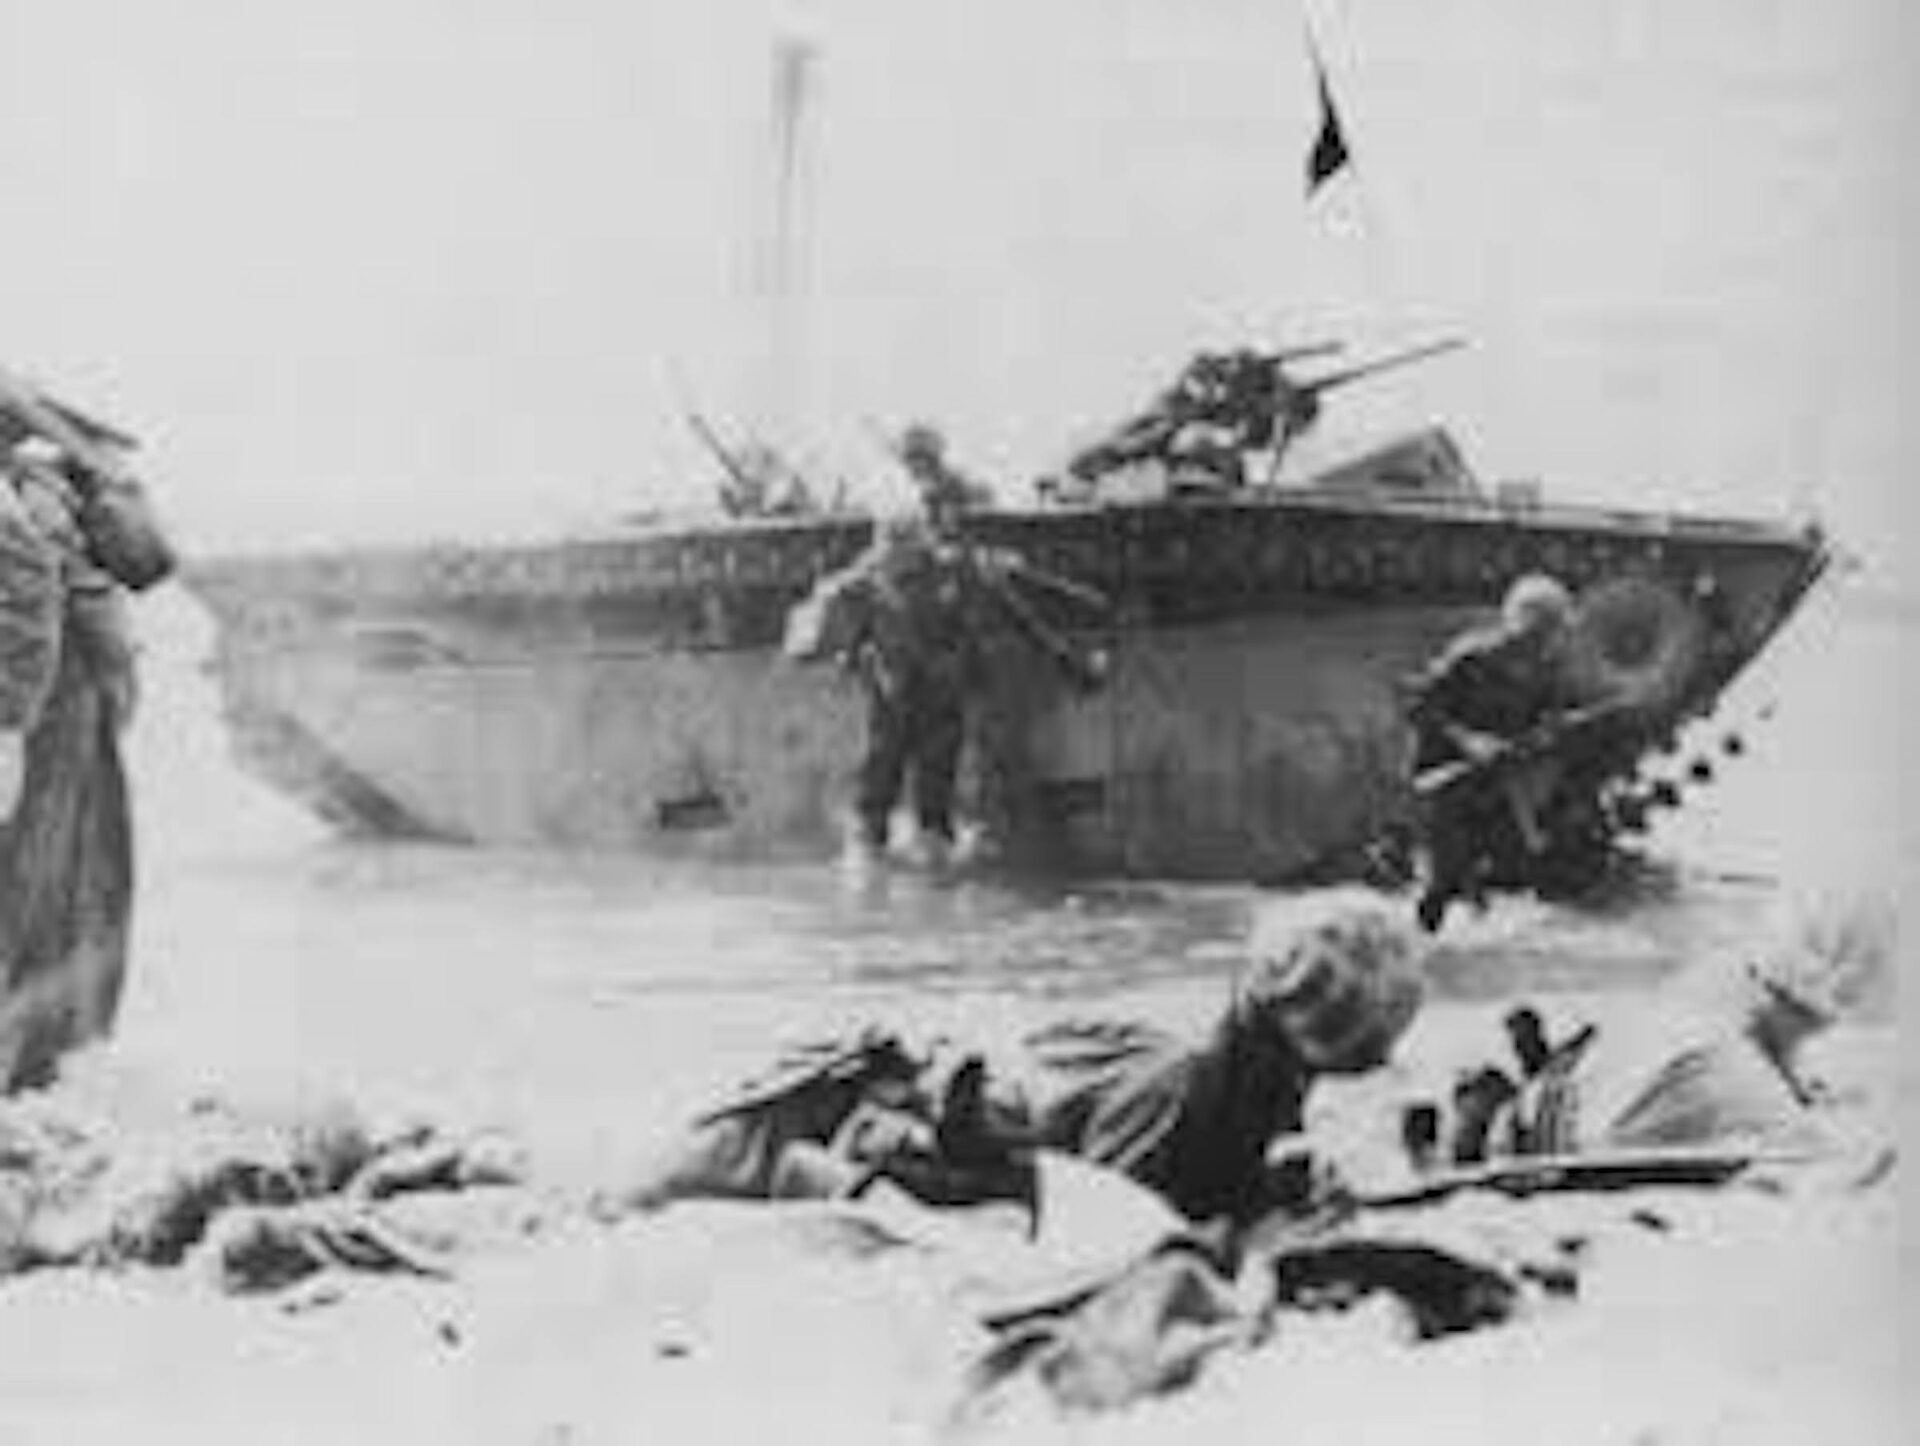 WW2 1st-Armored Amphibian Battalion makes a landing during the war in the Pacific.